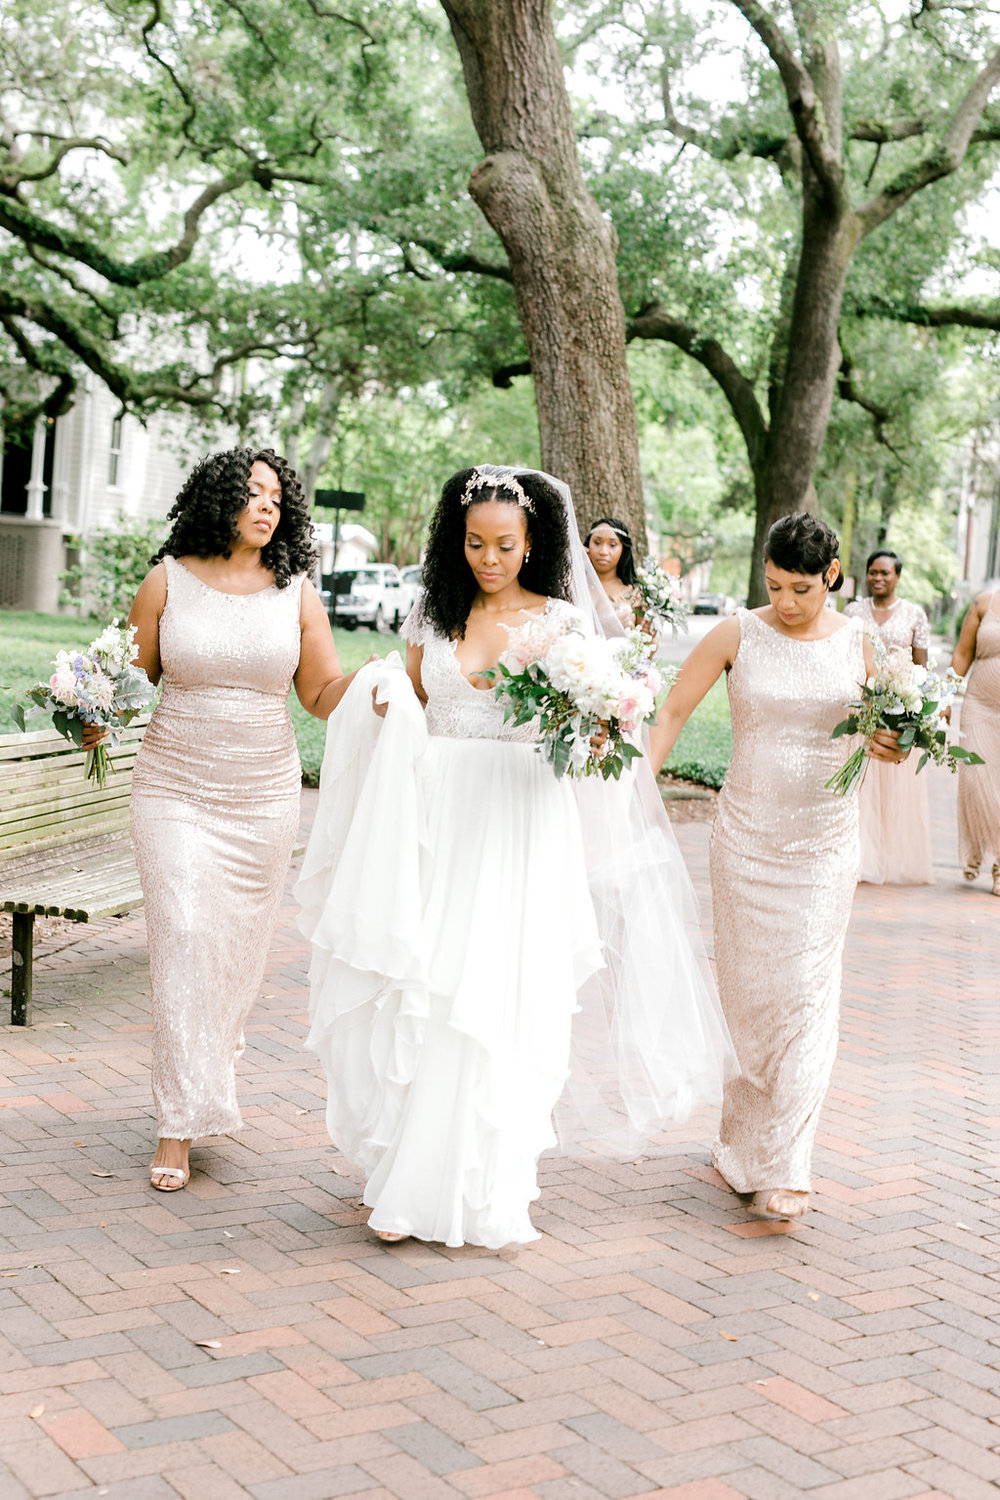 savannah-bridal-shop-i-and-b-florals-sonya-and-josh-colorful-rustic-boho-wedding-florals-at-soho-south-cafe-savannah-ga-wedding-danielle-george-photography-6.JPG